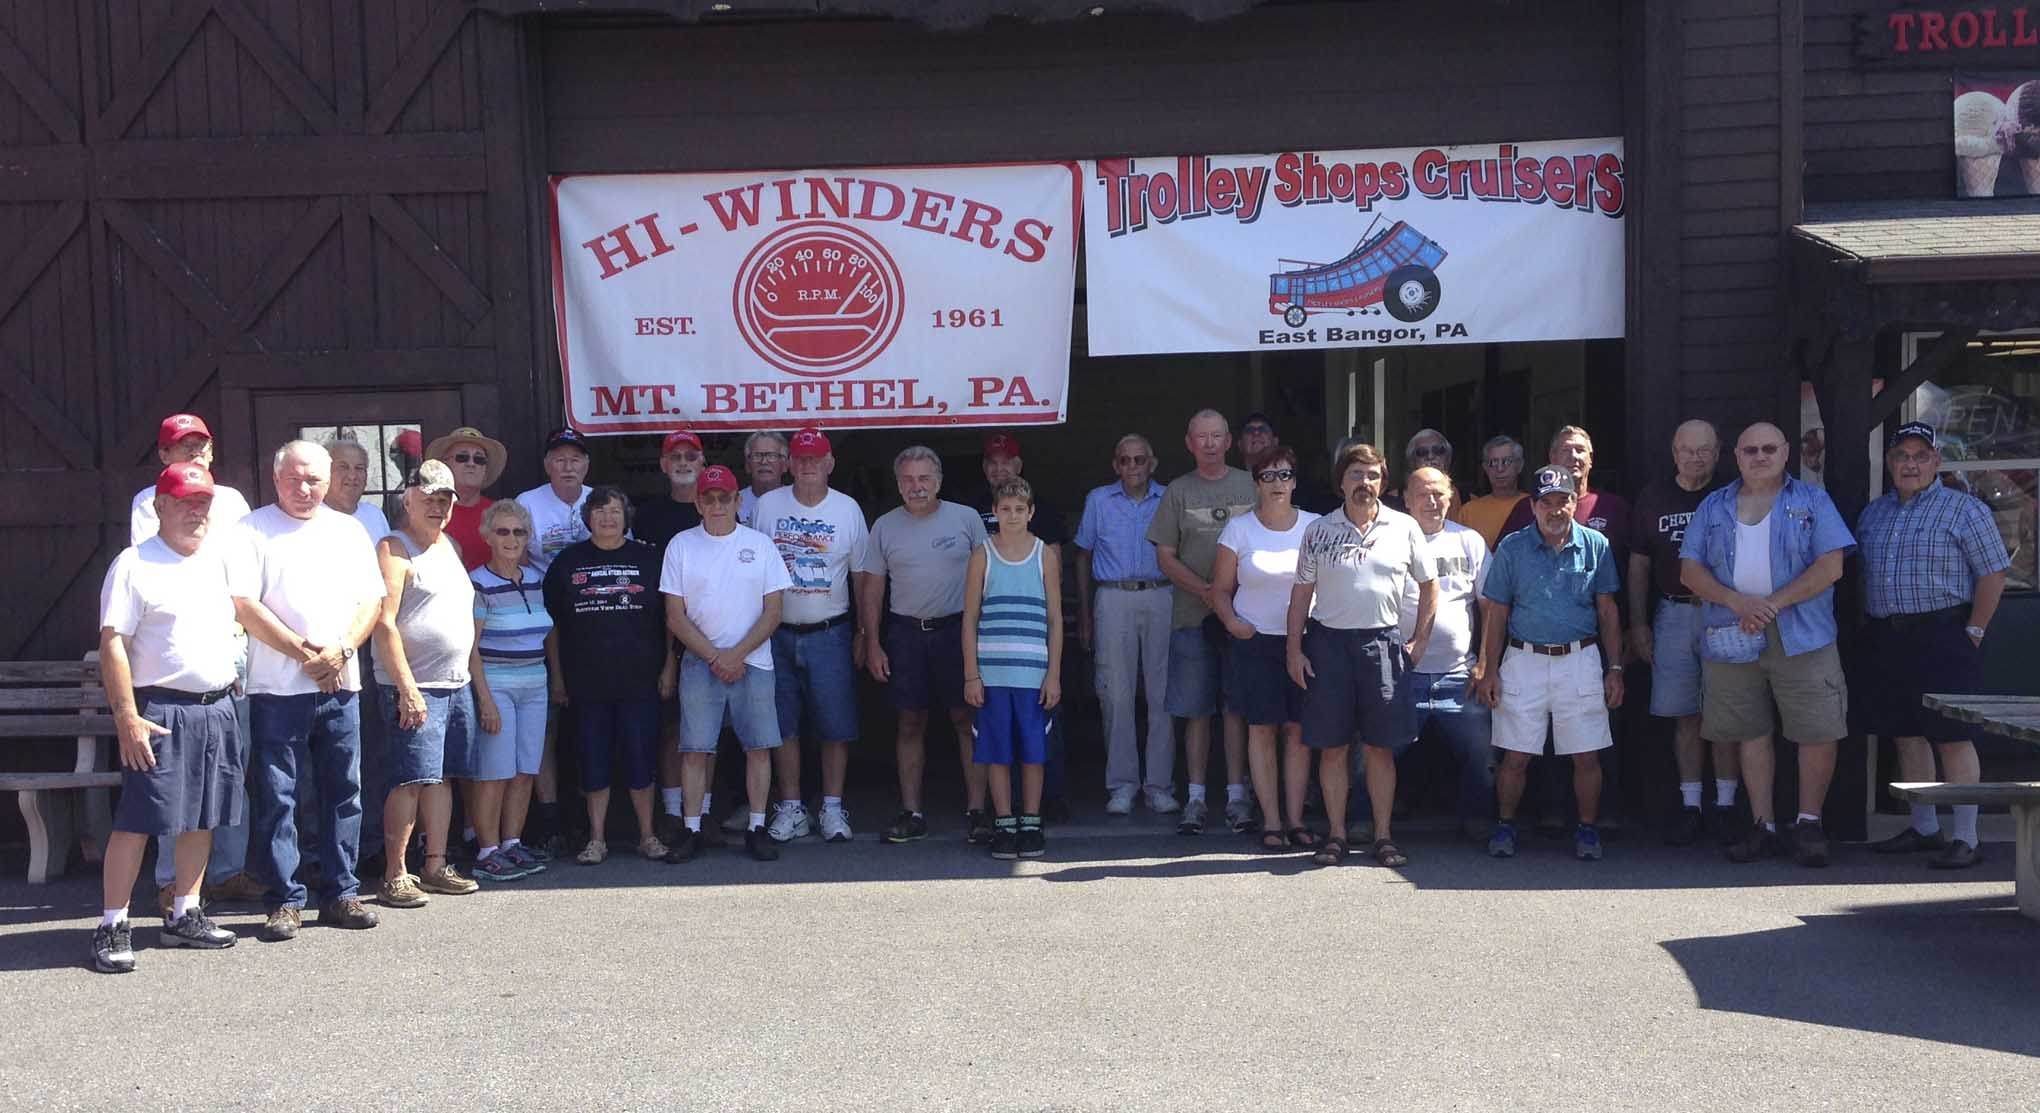 It is always appreciated when local street rodders take time out of their day to greet us at their local cruise spot. Members of the Hi-Winders and the Trolley Shop Cruisers joined us Wednesday at noon at the Trolley Shops for an ice cream social.